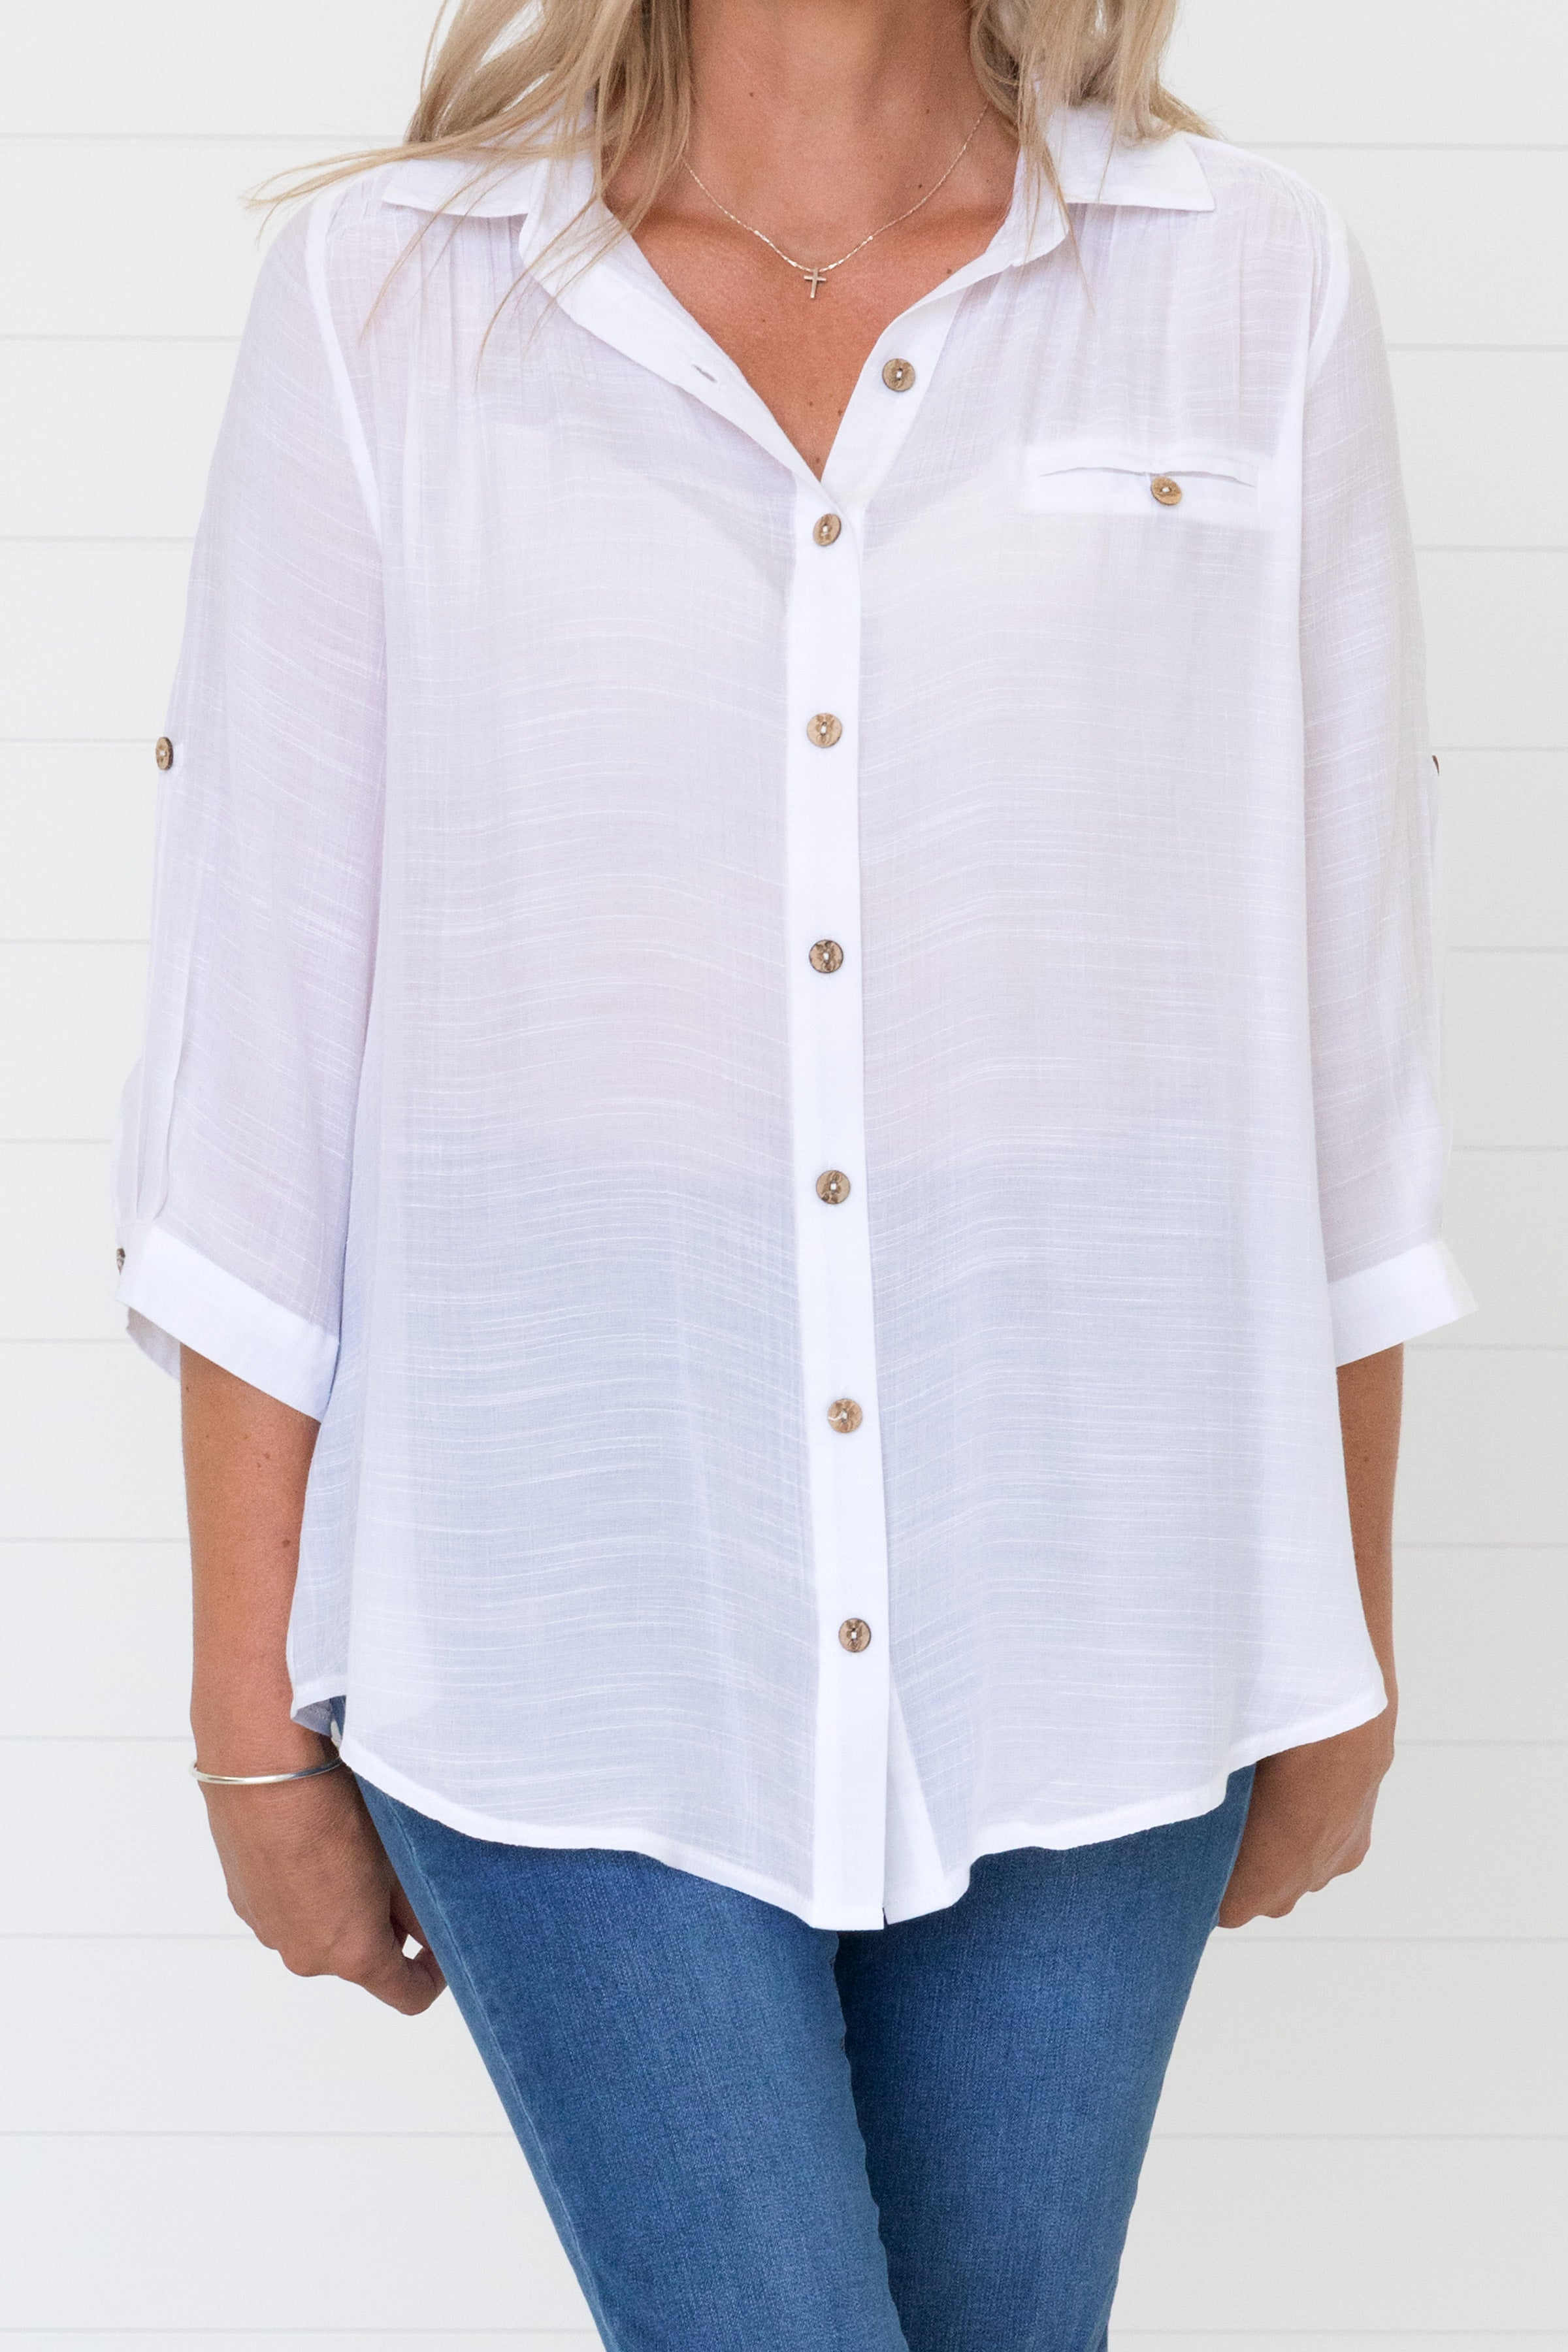 Molly Shirt White - Waa $45.00